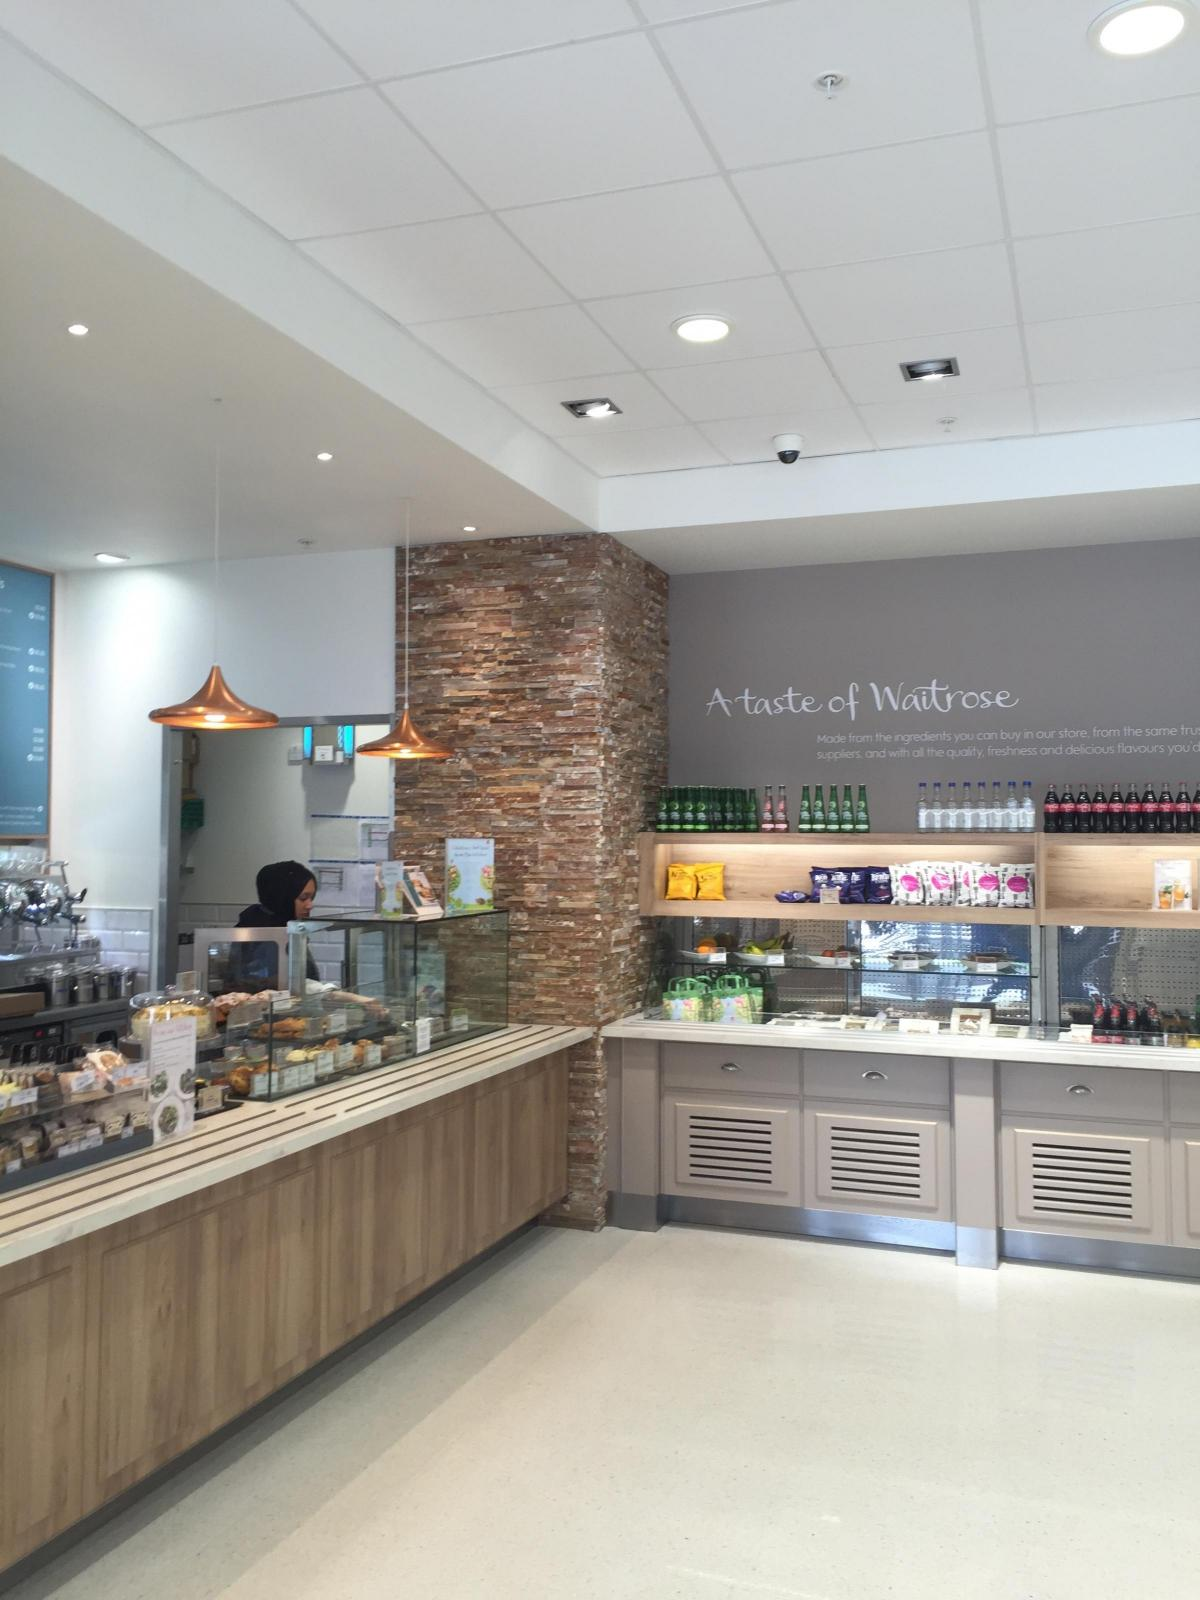 Why The Waitrose Cafe On Botley Road Wasnt Up To India And